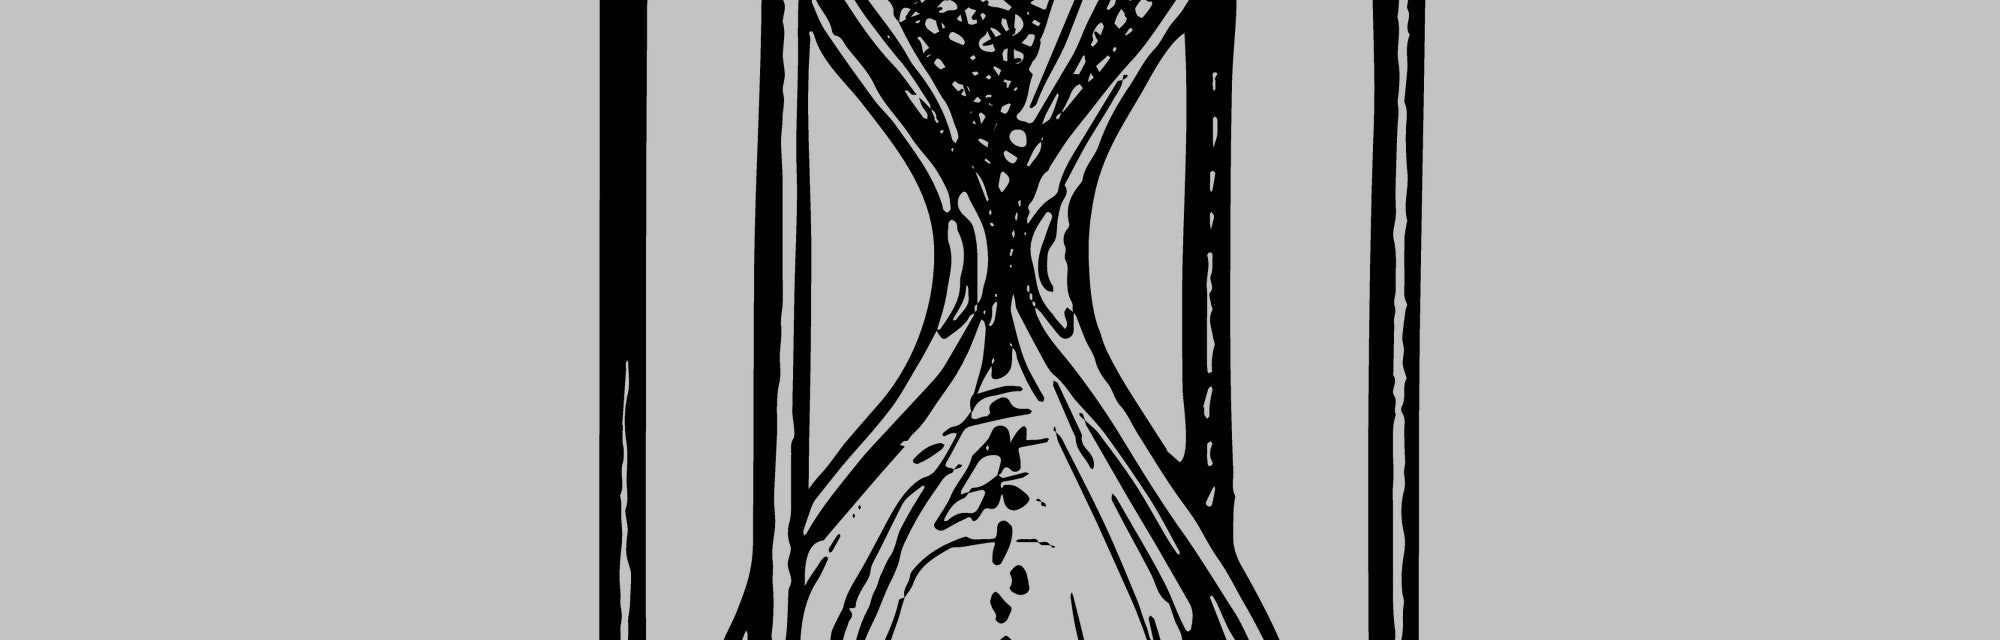 Vintage hourglass. Antique timer. Ink sketch isolated on white background. Hand drawn vector illustration. Retro style.